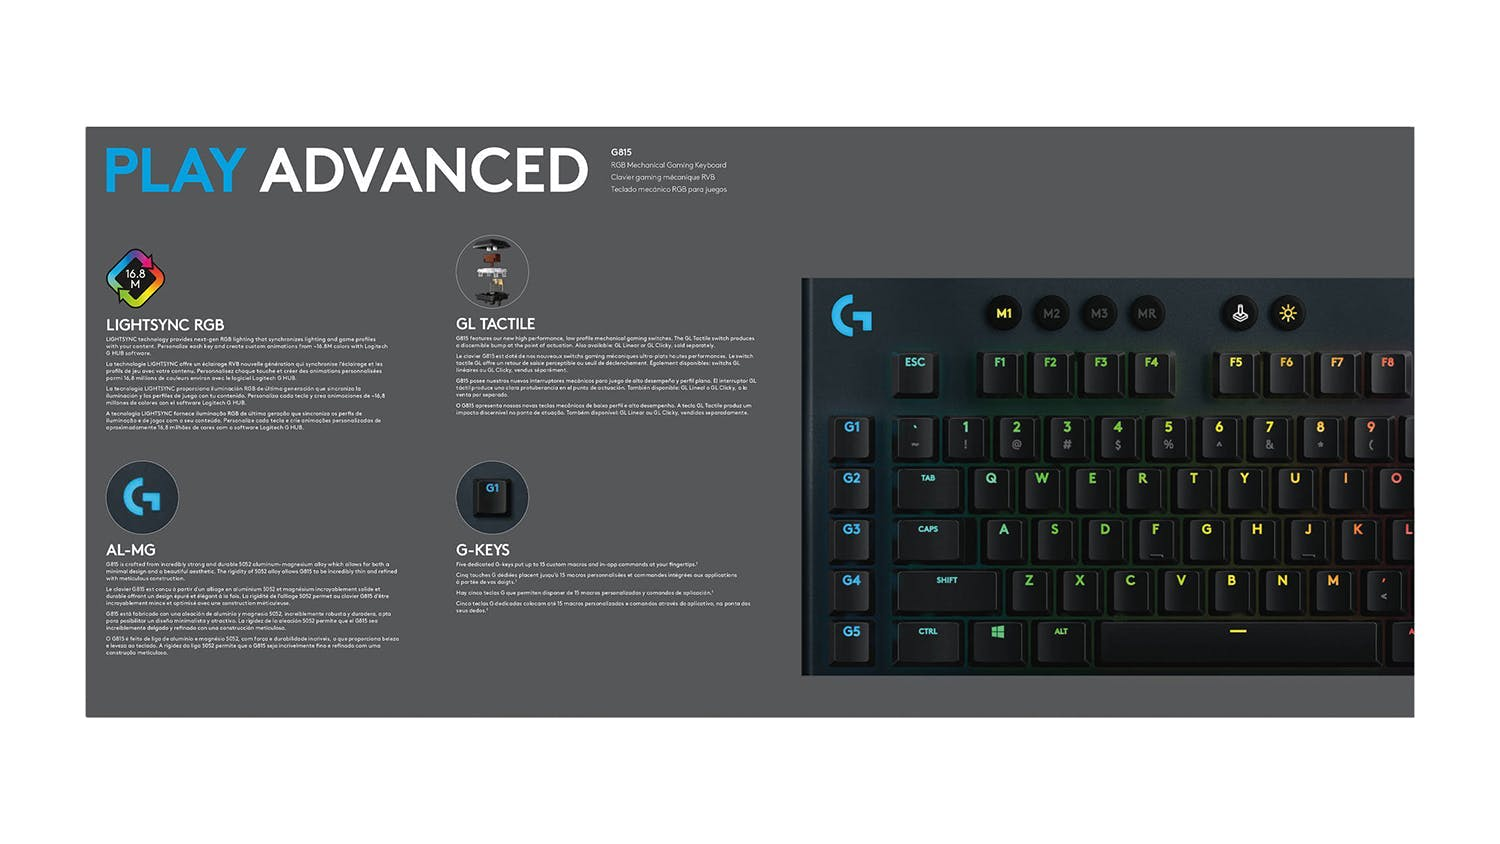 Logitech G815 LIGHTSYNC RGB Mechanical Gaming Keyboard - GL Tactile